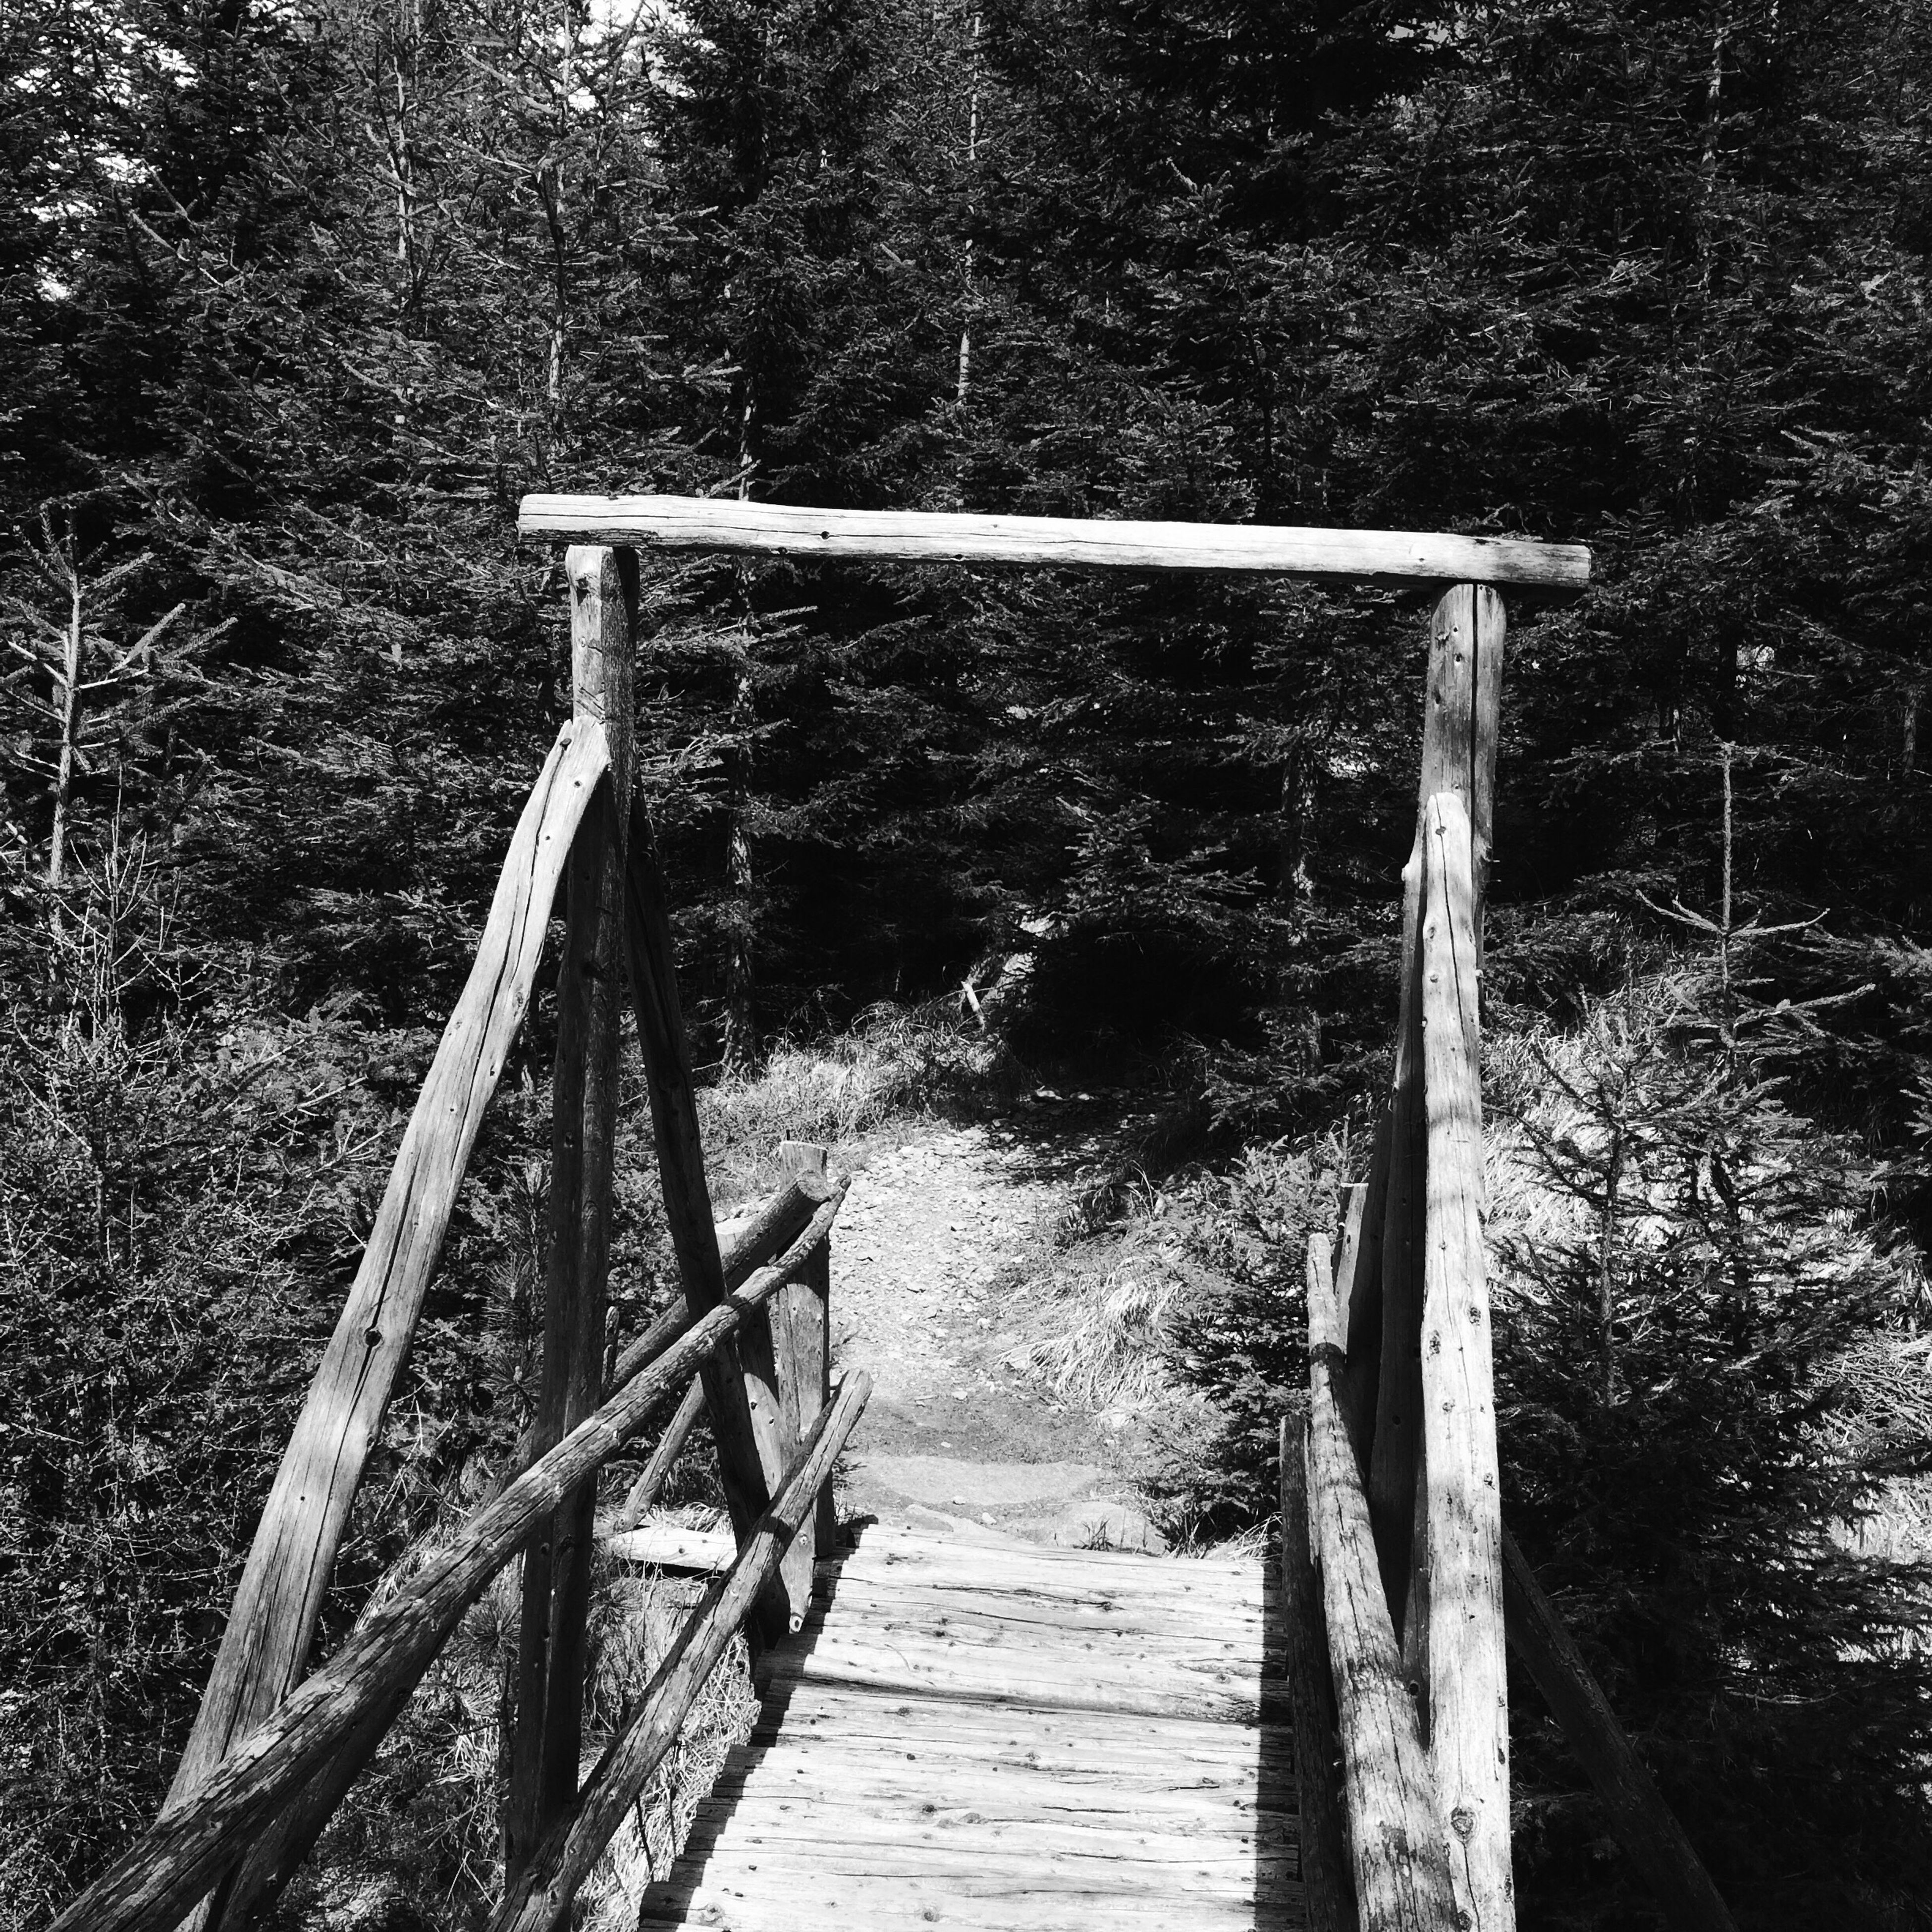 tree, wood - material, forest, railing, nature, day, outdoors, the way forward, no people, footbridge, beauty in nature, hand rail